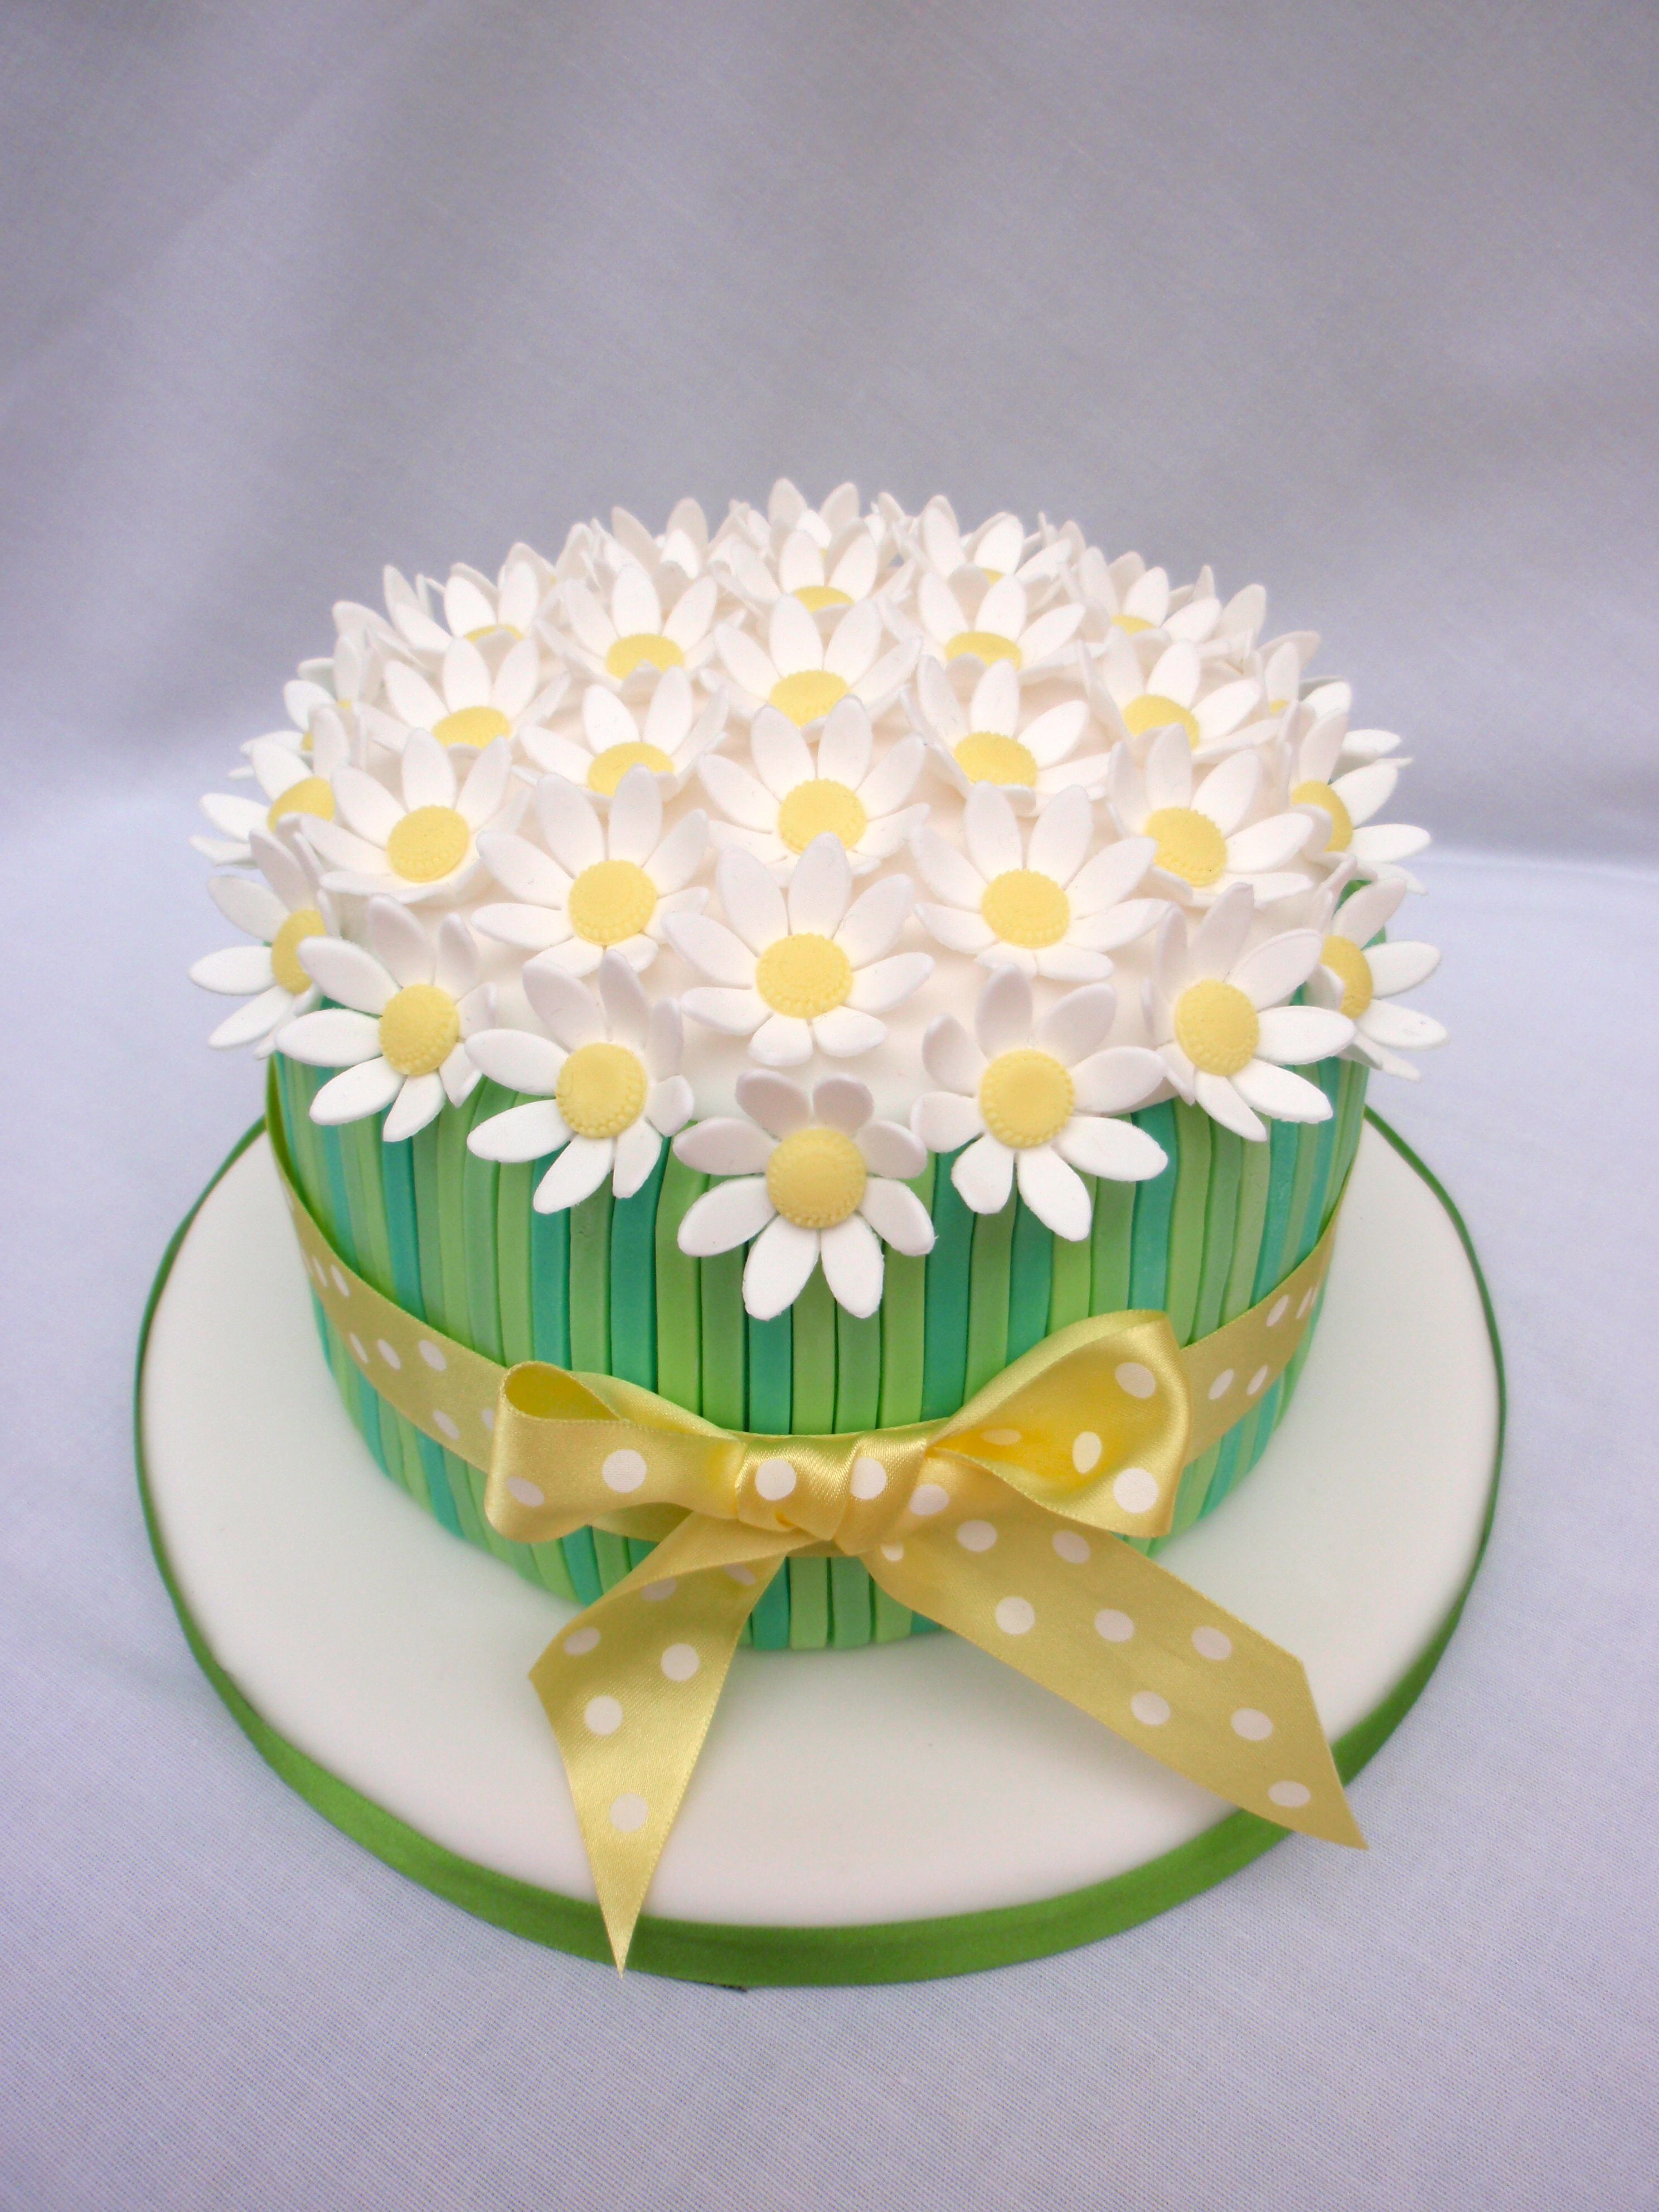 Stupendous Daisy Birthday Cake With Images Daisy Cakes Birthday Cake Funny Birthday Cards Online Alyptdamsfinfo